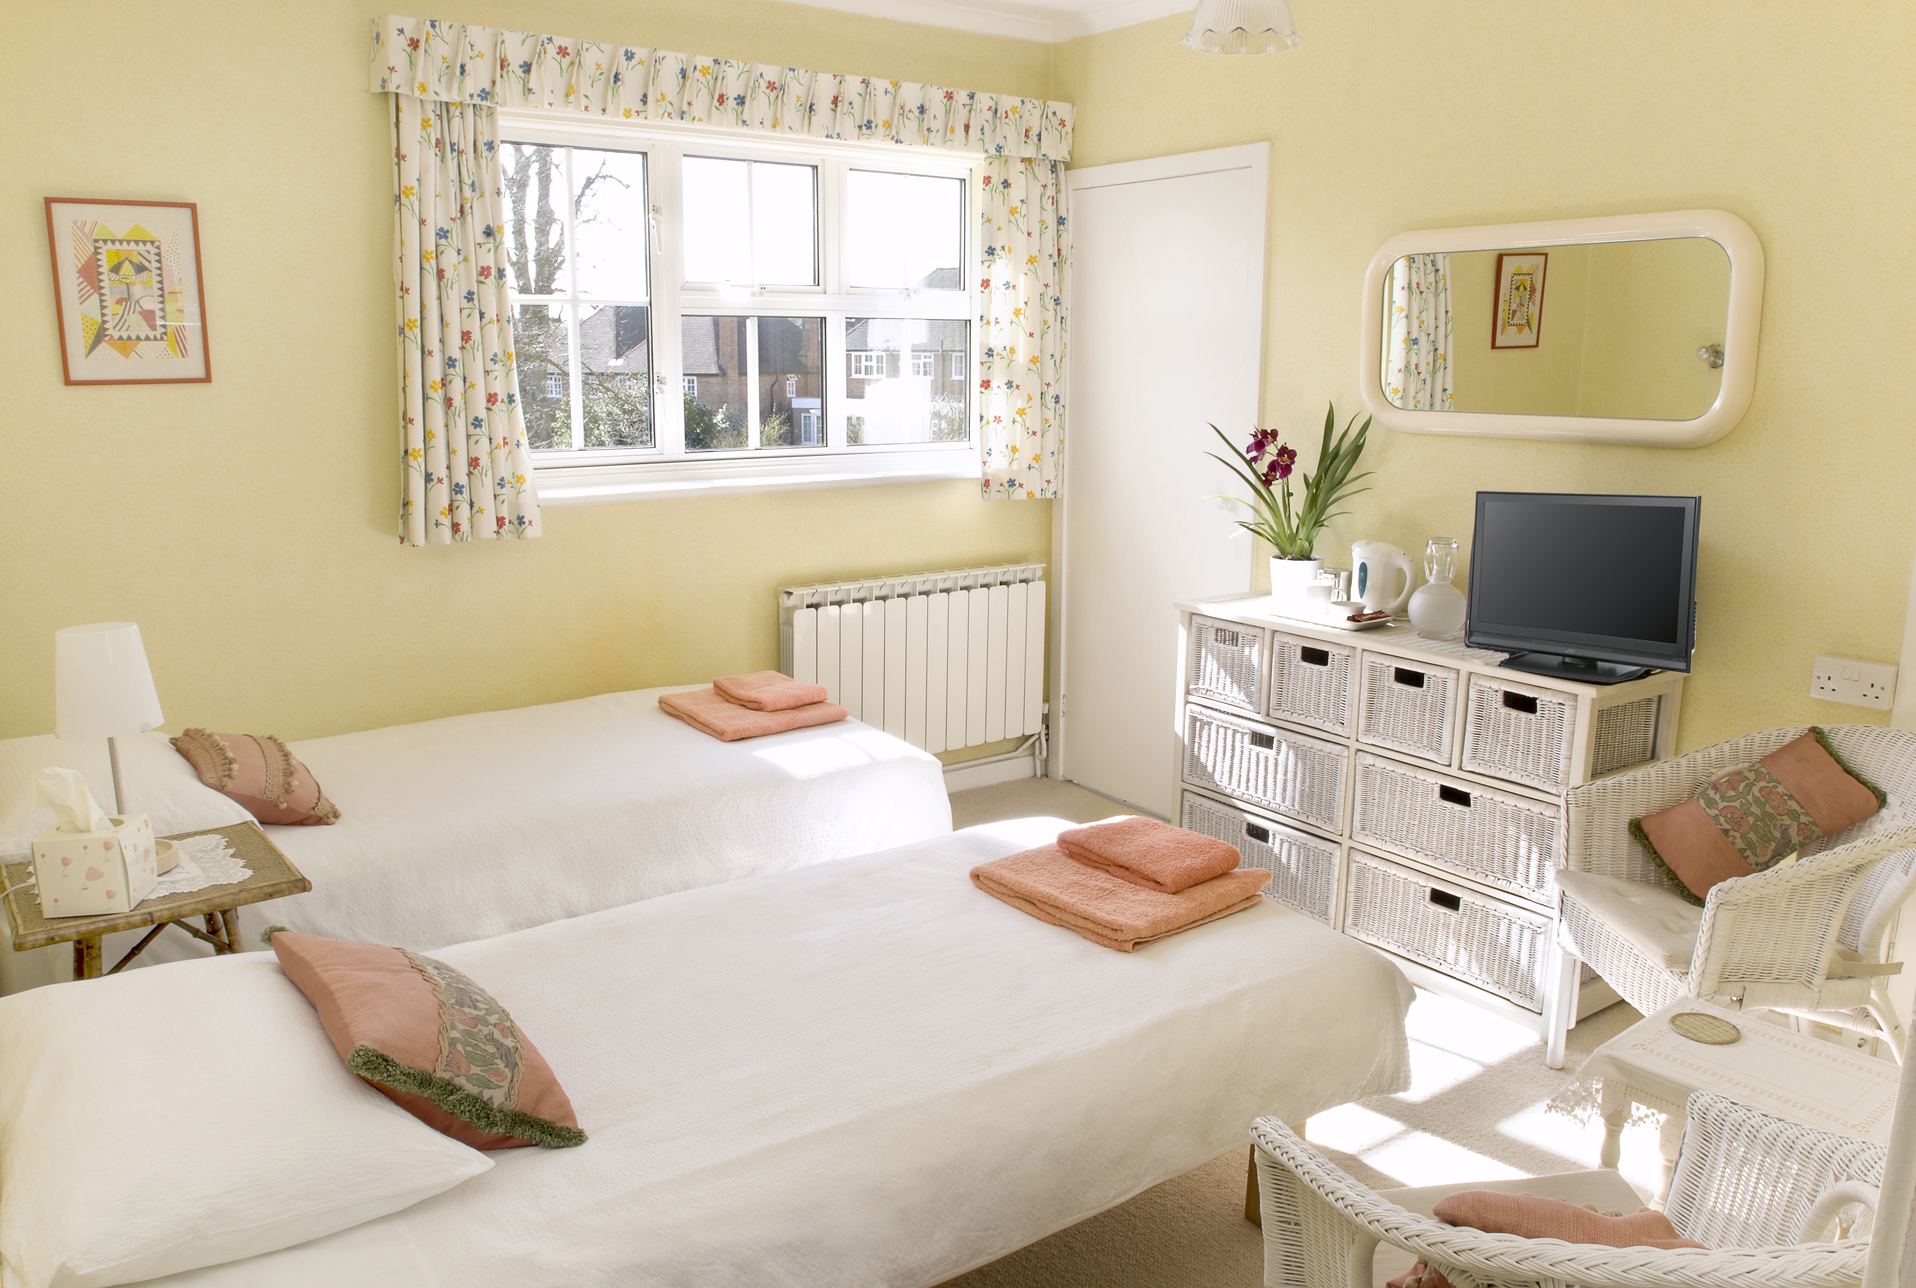 Park House Bed and Breakfast Accommodation in St Albans